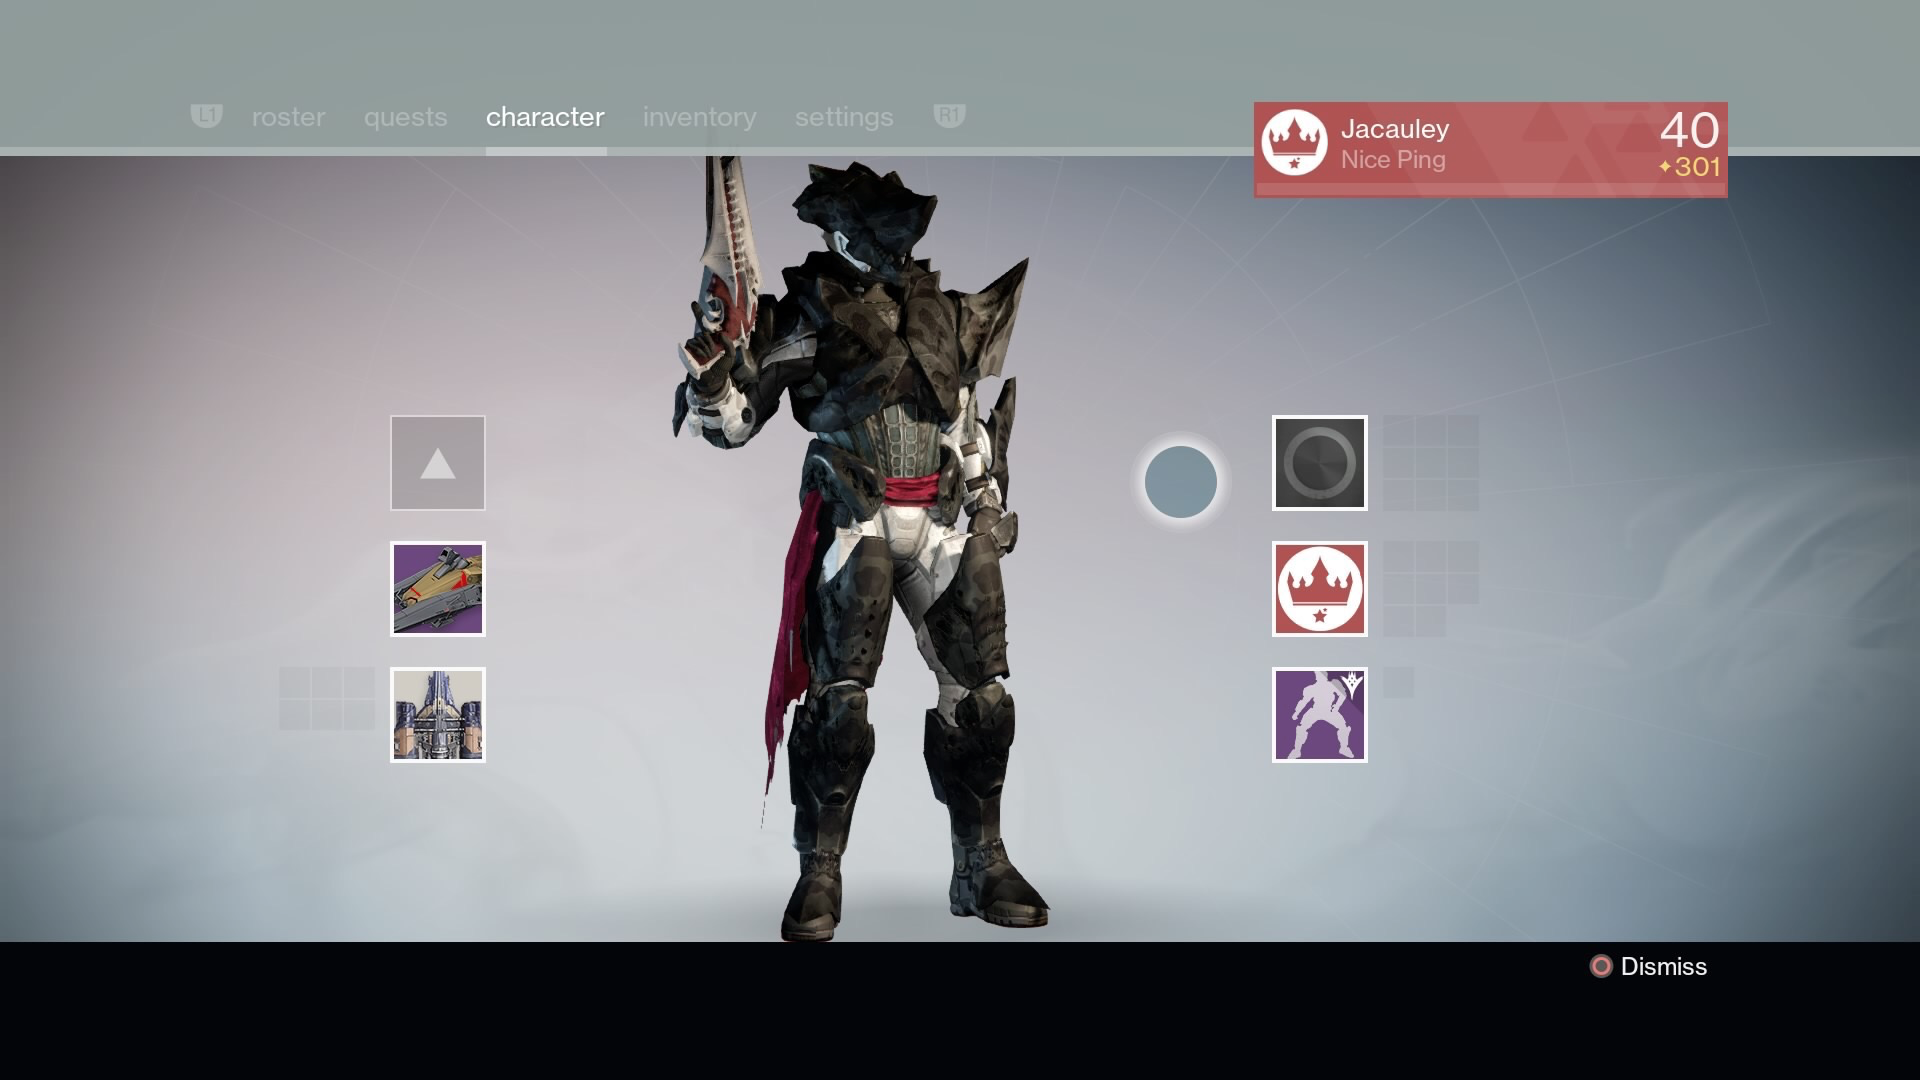 Shares images of titan raid gear received from destiny s fall raid